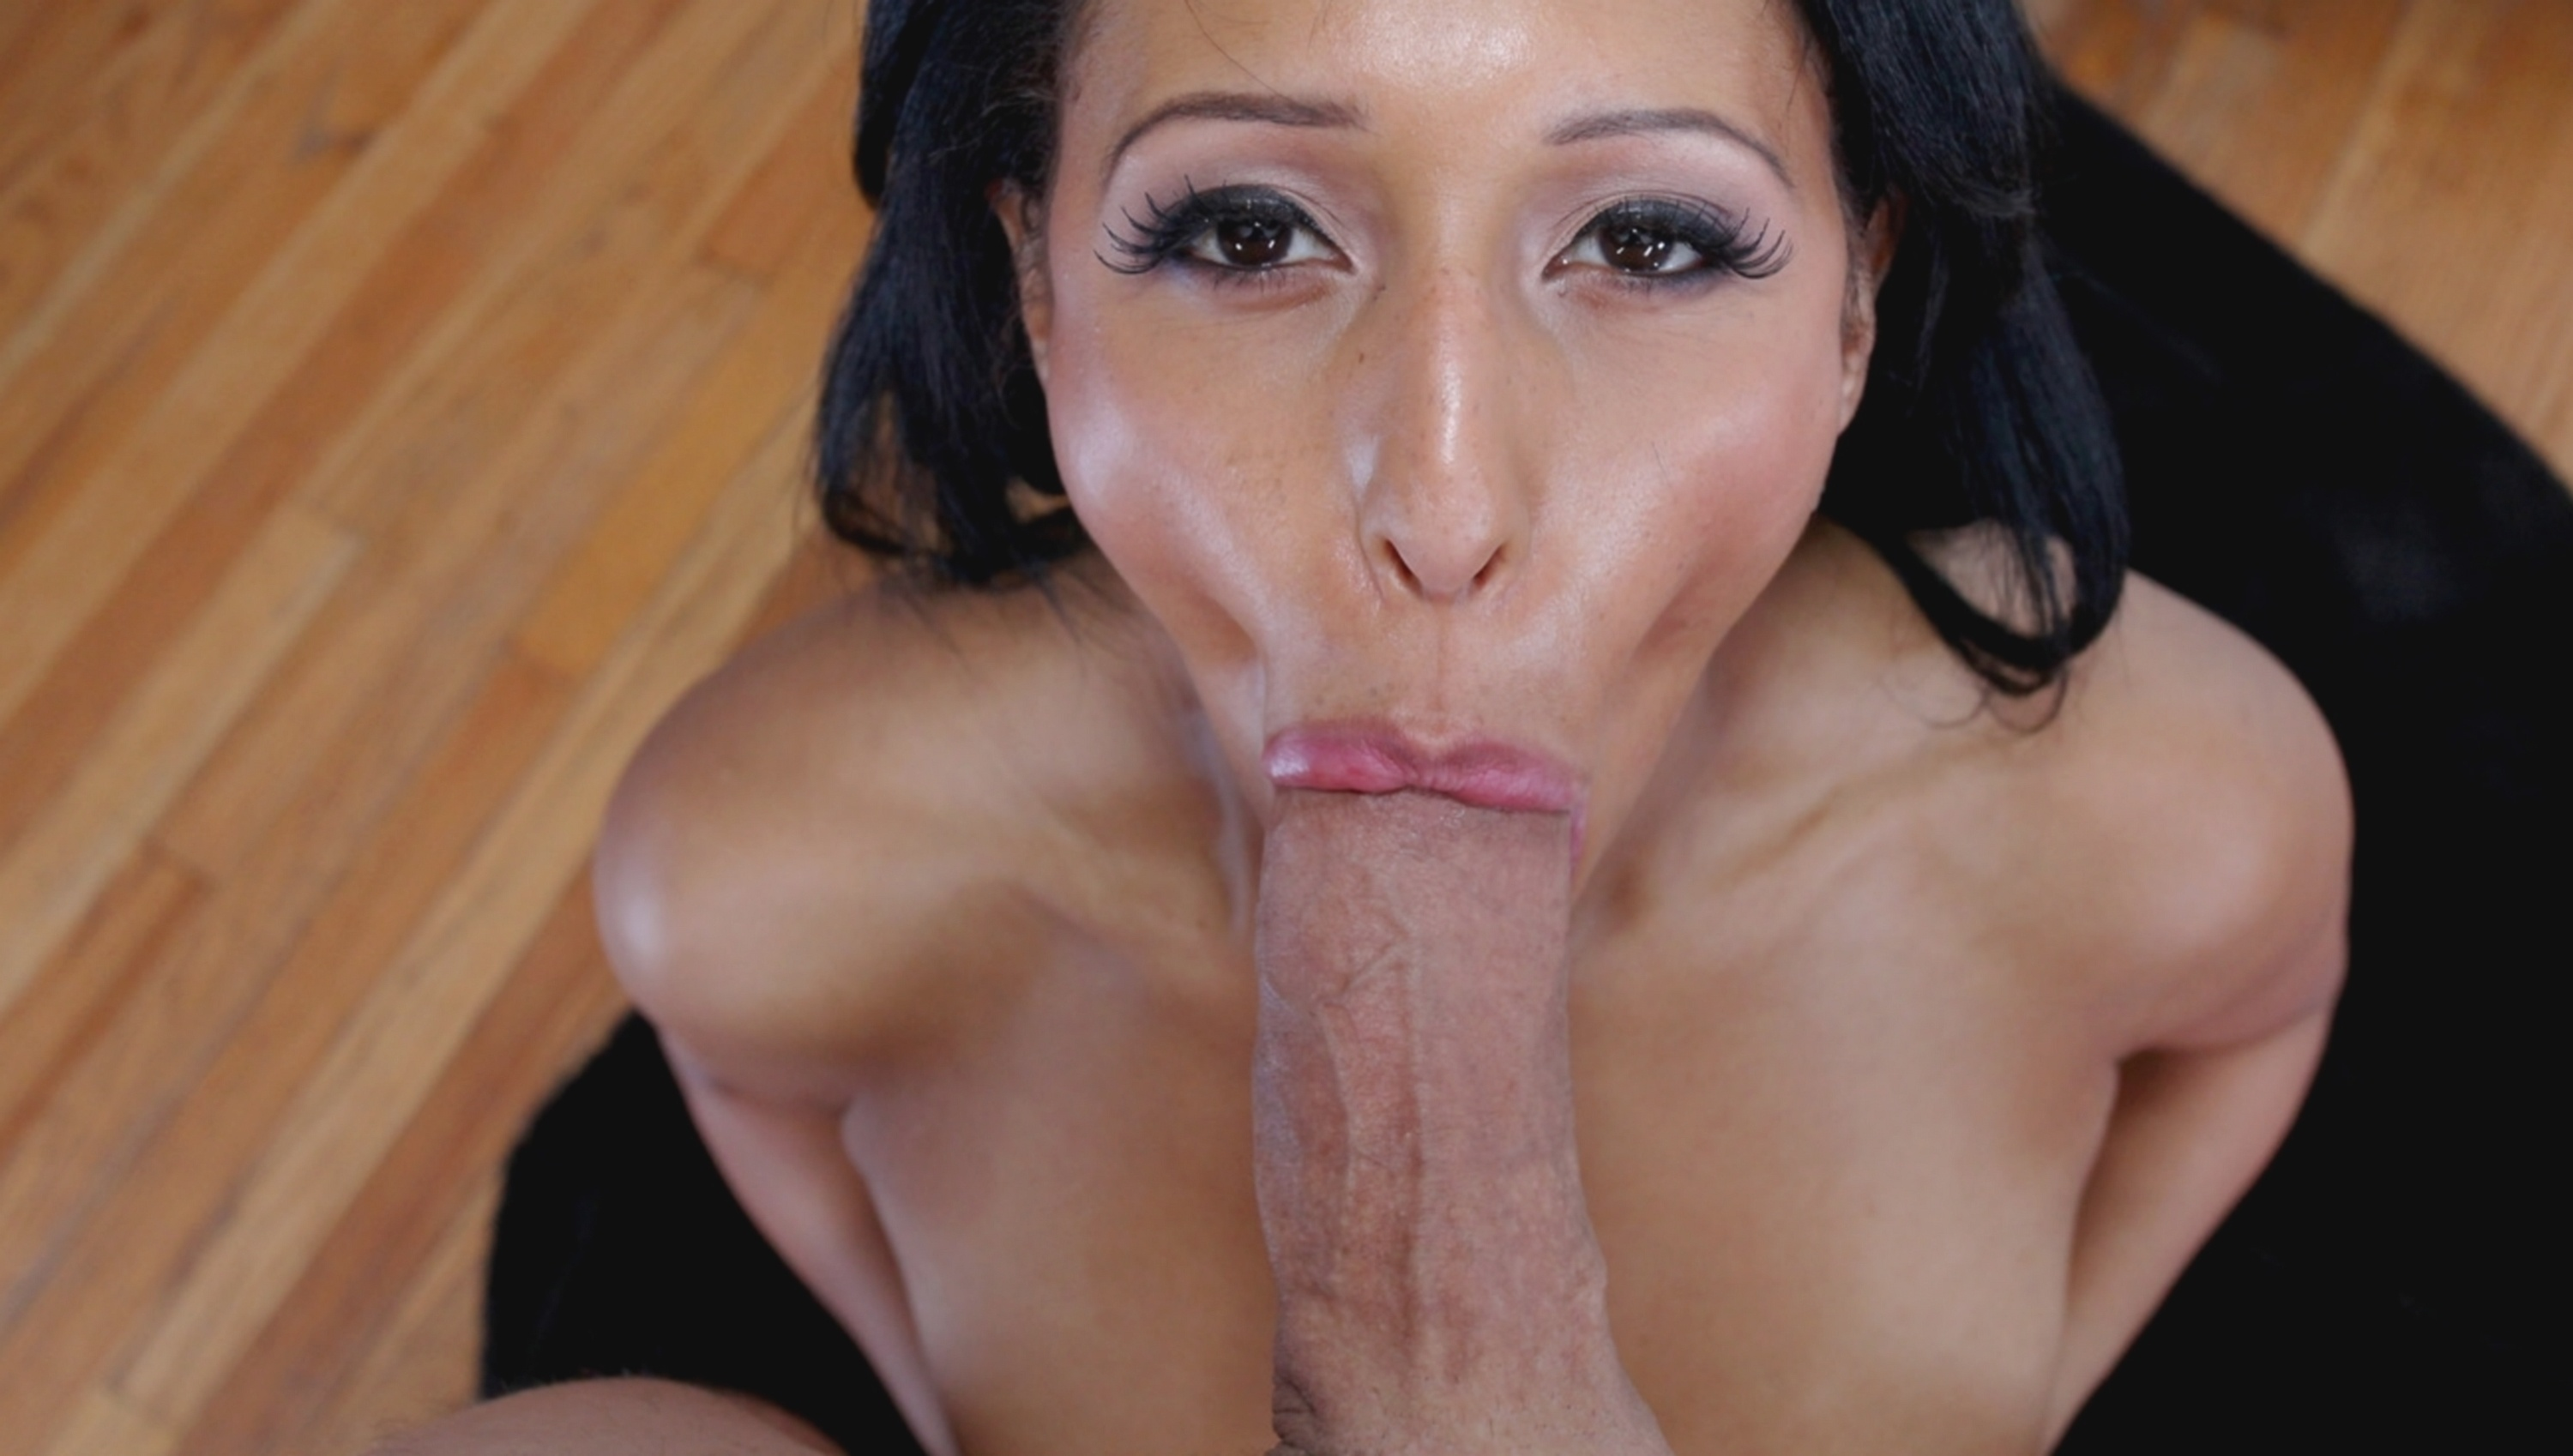 Dick sucking lips and facials the movie 8